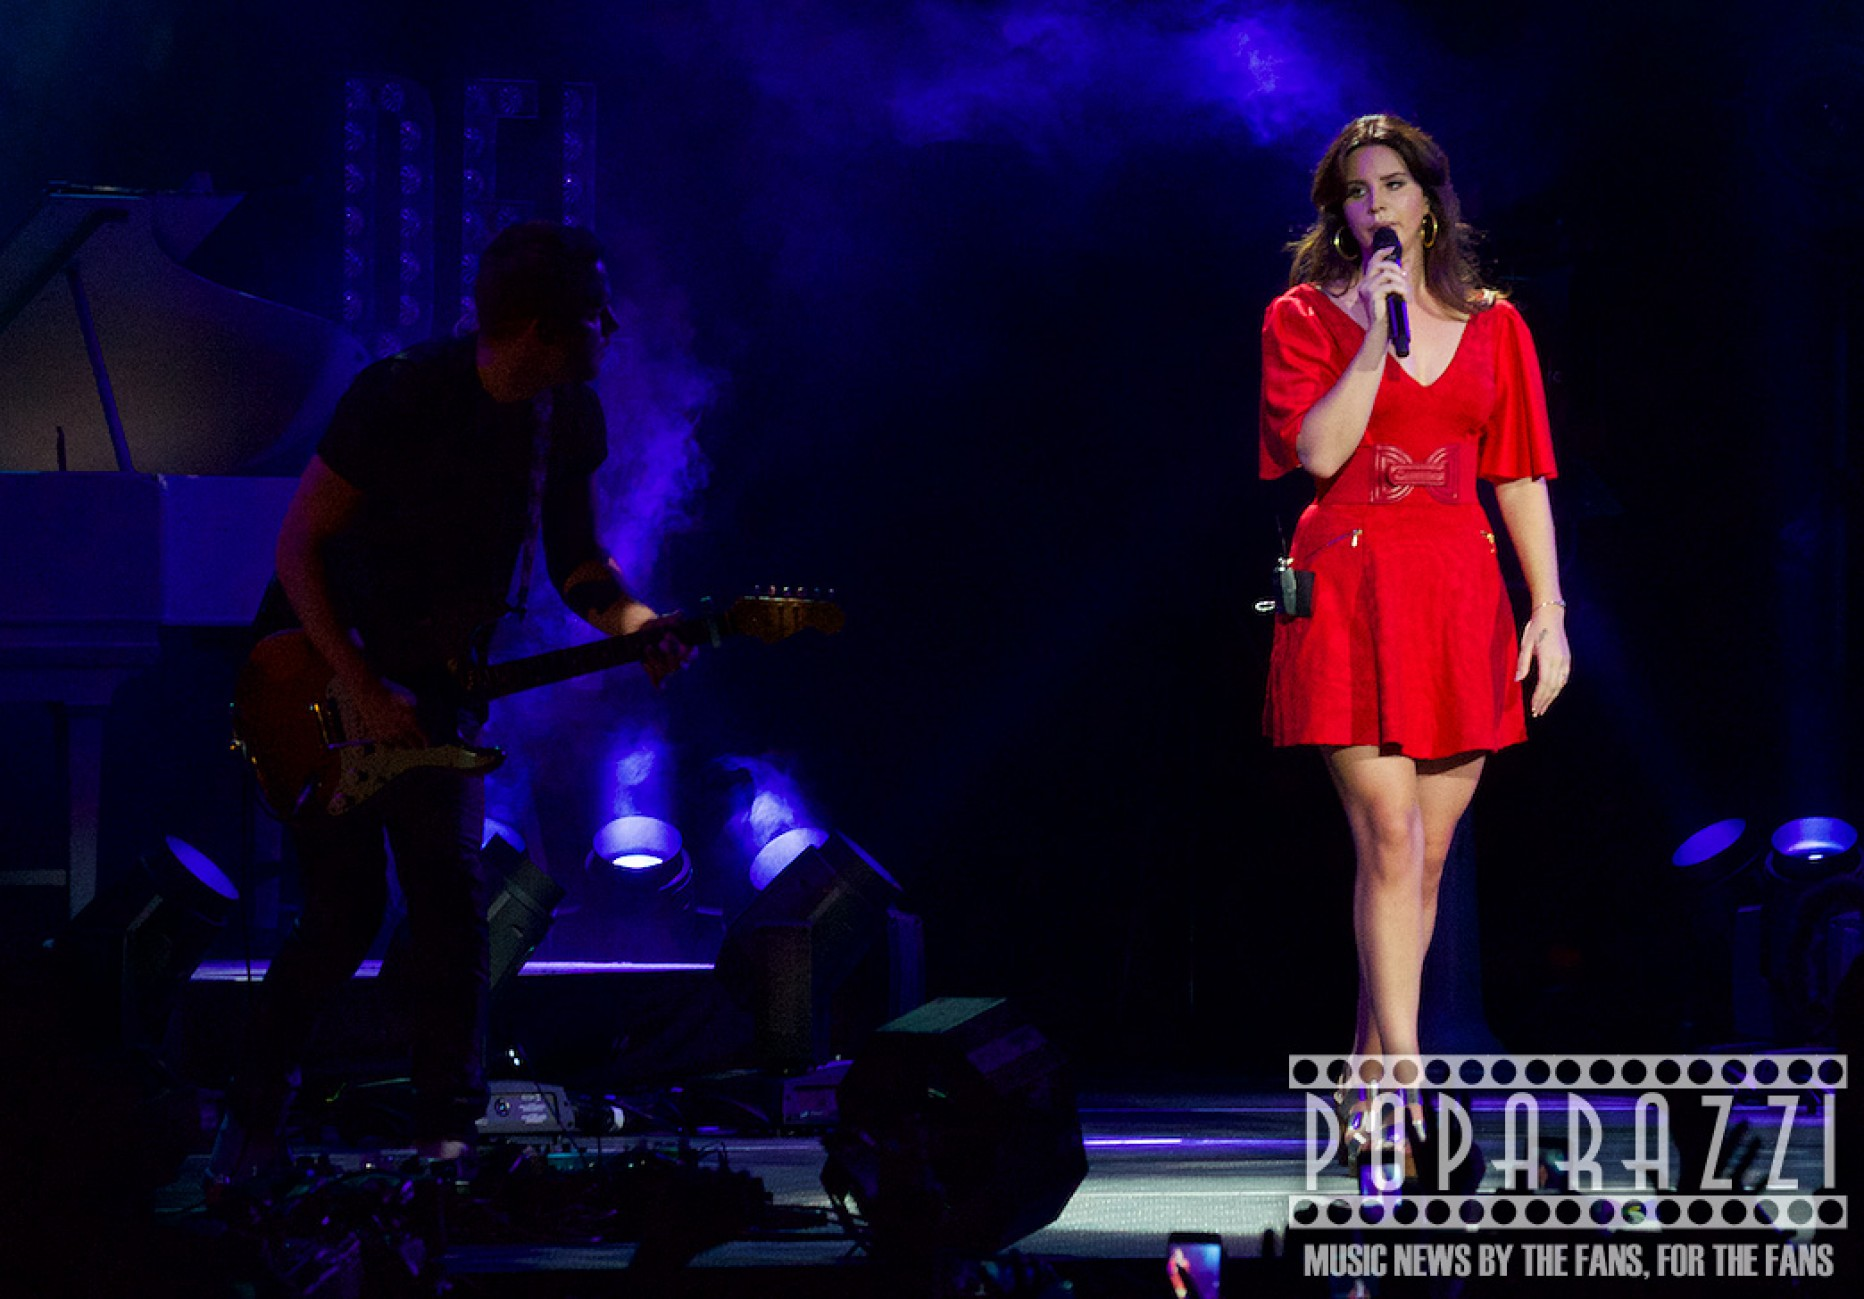 Concert Review: Lana Del Rey at Jiffy Lube Live in Bristow, VA